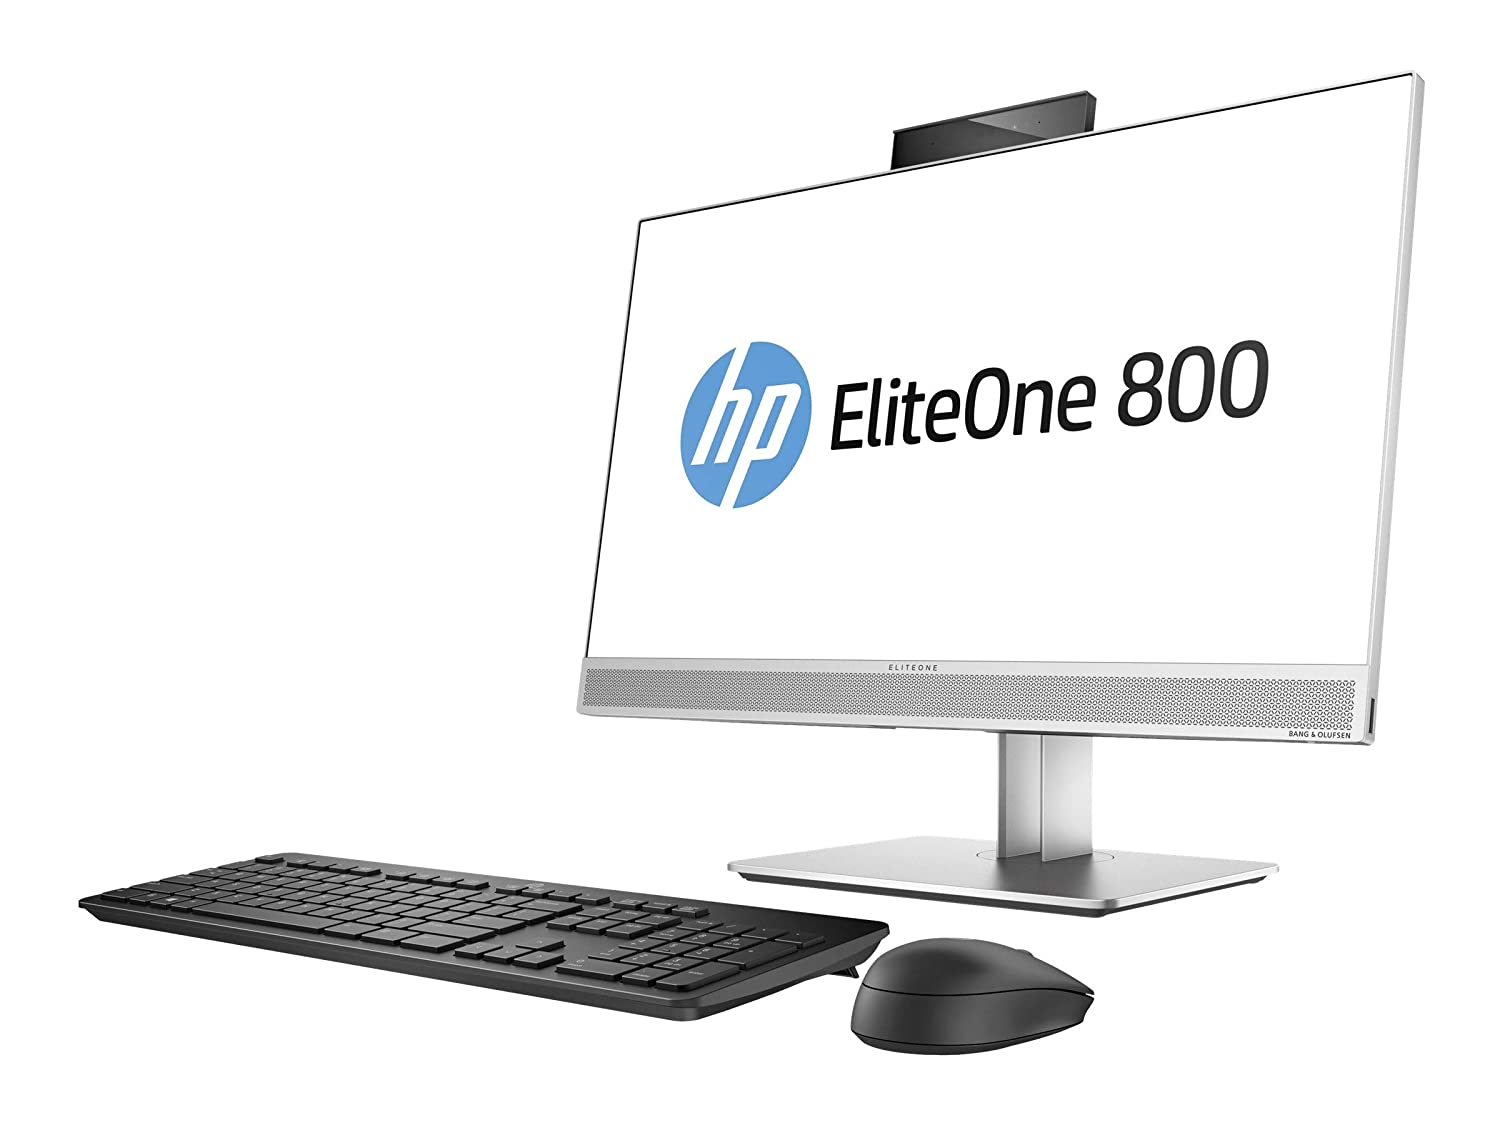 HP 1JF76UT#ABA EliteOne 800 G3 23.8' All-in-One PC - 8 GB RAM - 256 GB SSD - Intel HD Graphics - Black/Gray